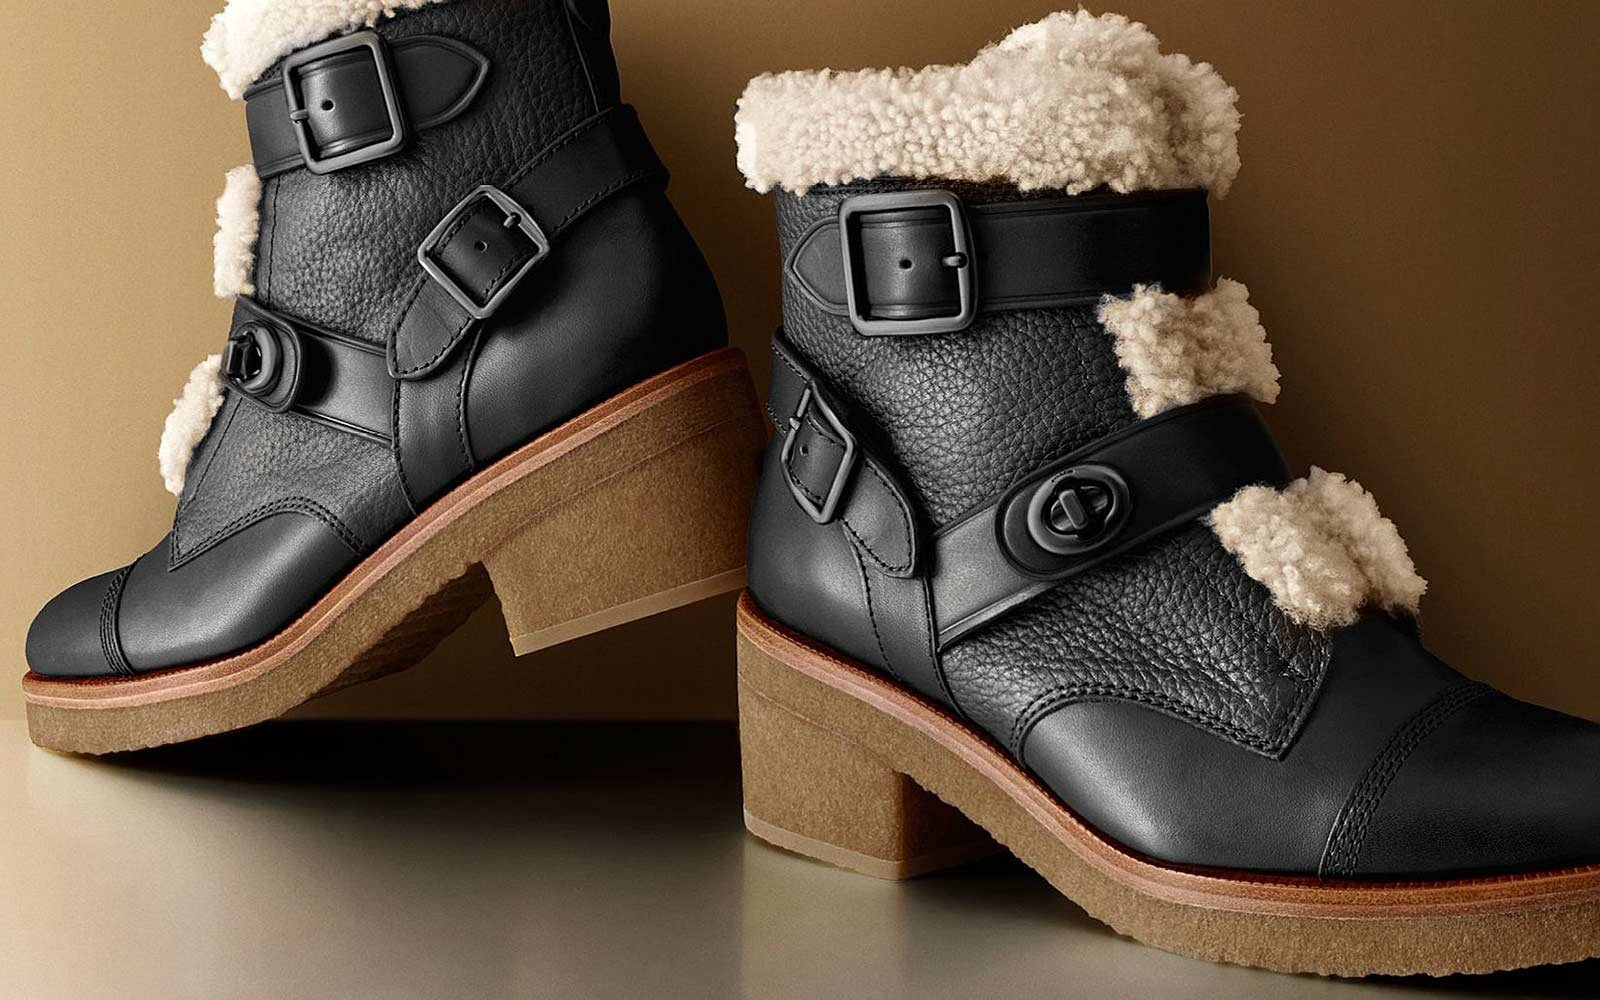 snow-boots-coach-lifestyle-BOOTSTYLE0117.jpg